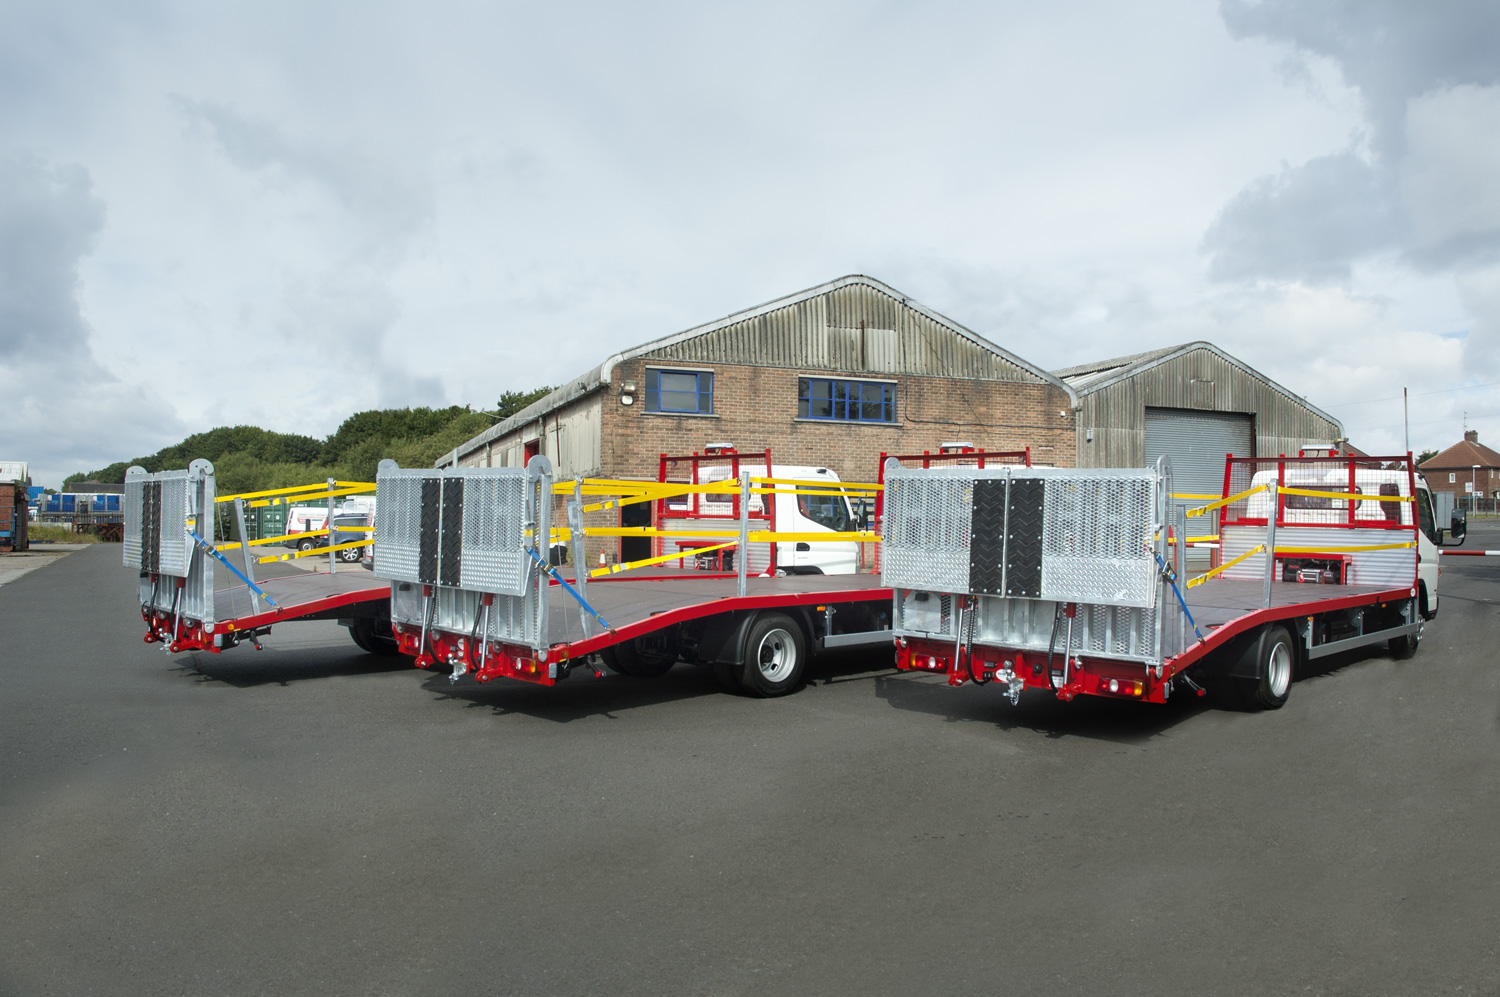 7.5 tonne access body with hydraulic ramps and edge protection